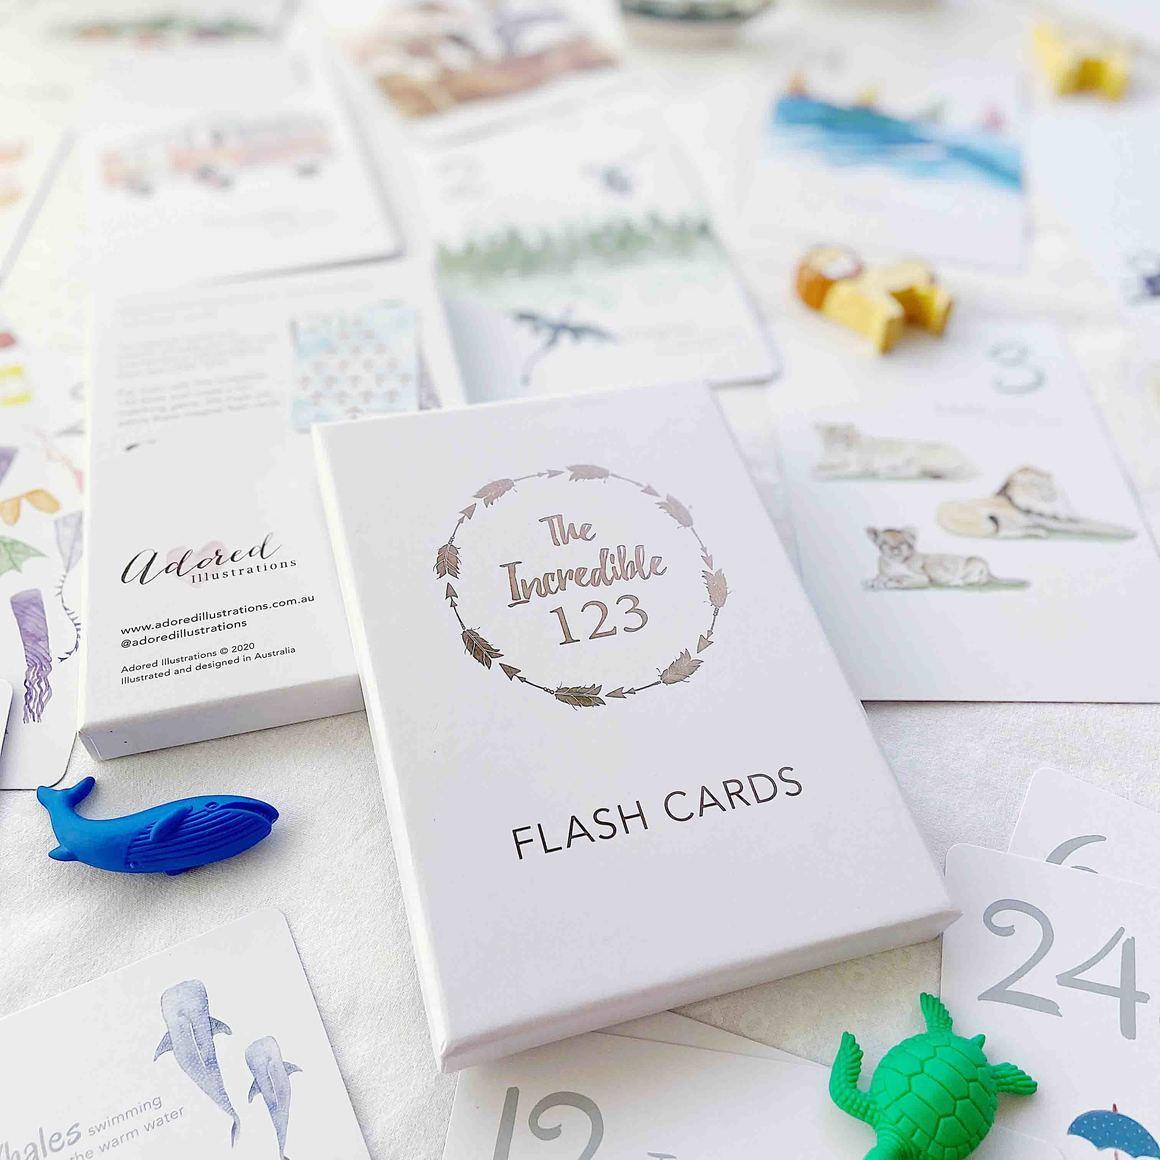 The Incredible 123 Flash Cards | Trada Marketplace